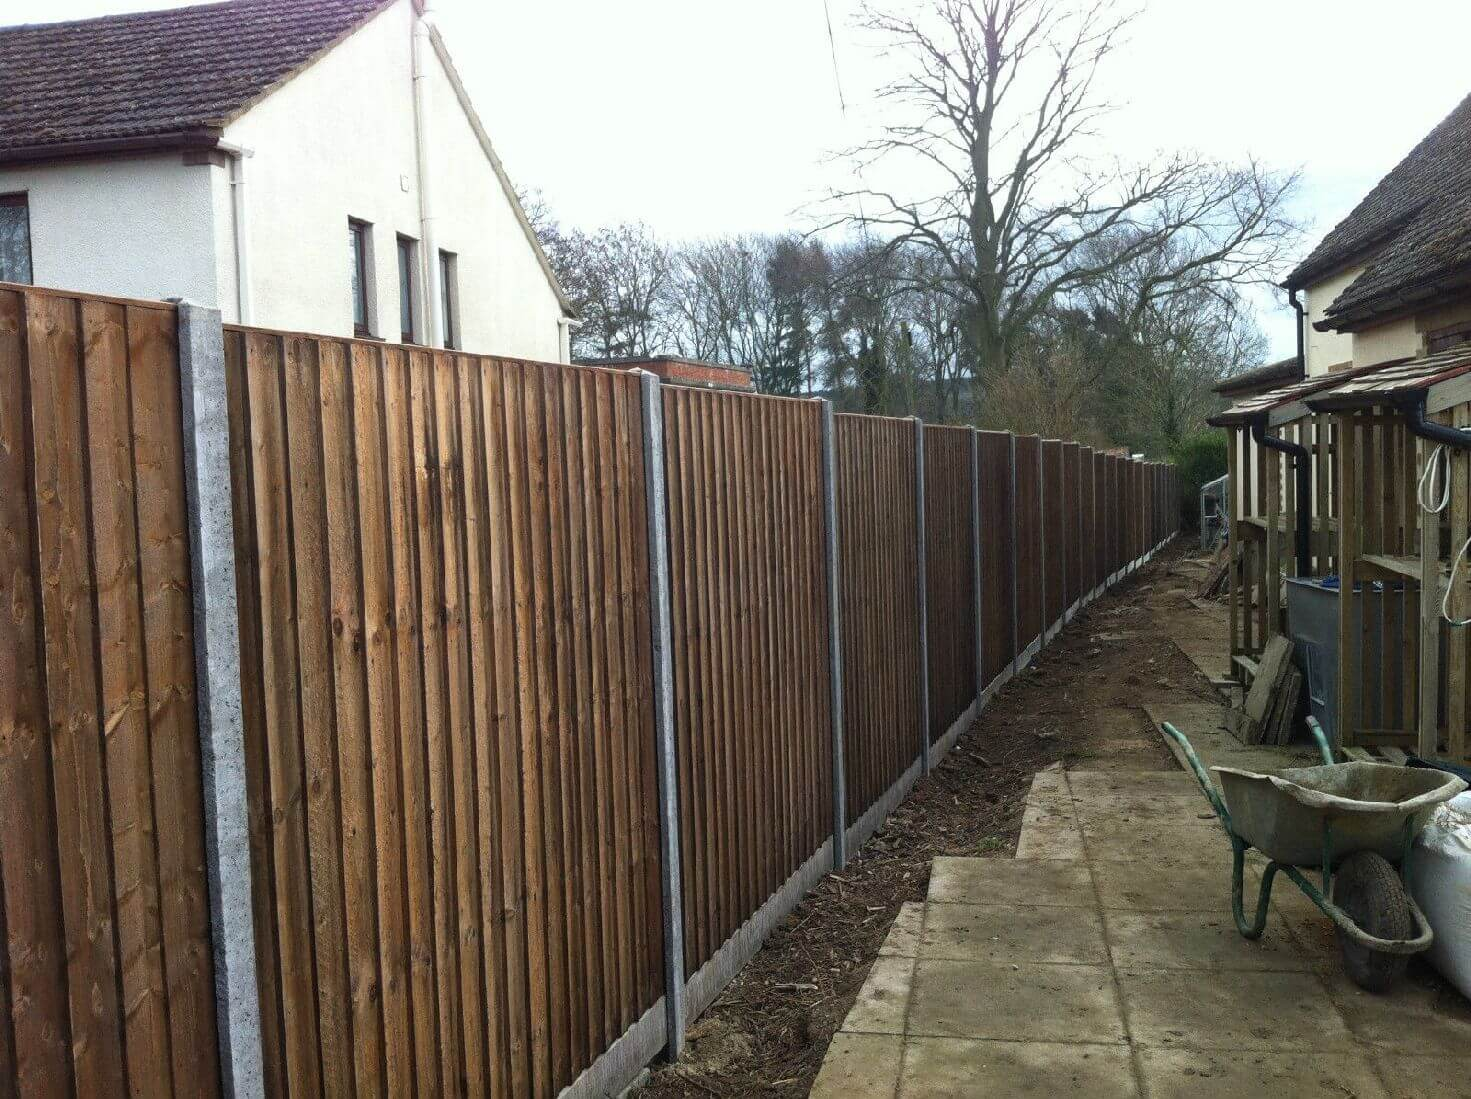 Fence posts archives oakfield uk ltd peterborough fencing company concrete fence installation concrete wooden fencing baanklon Choice Image